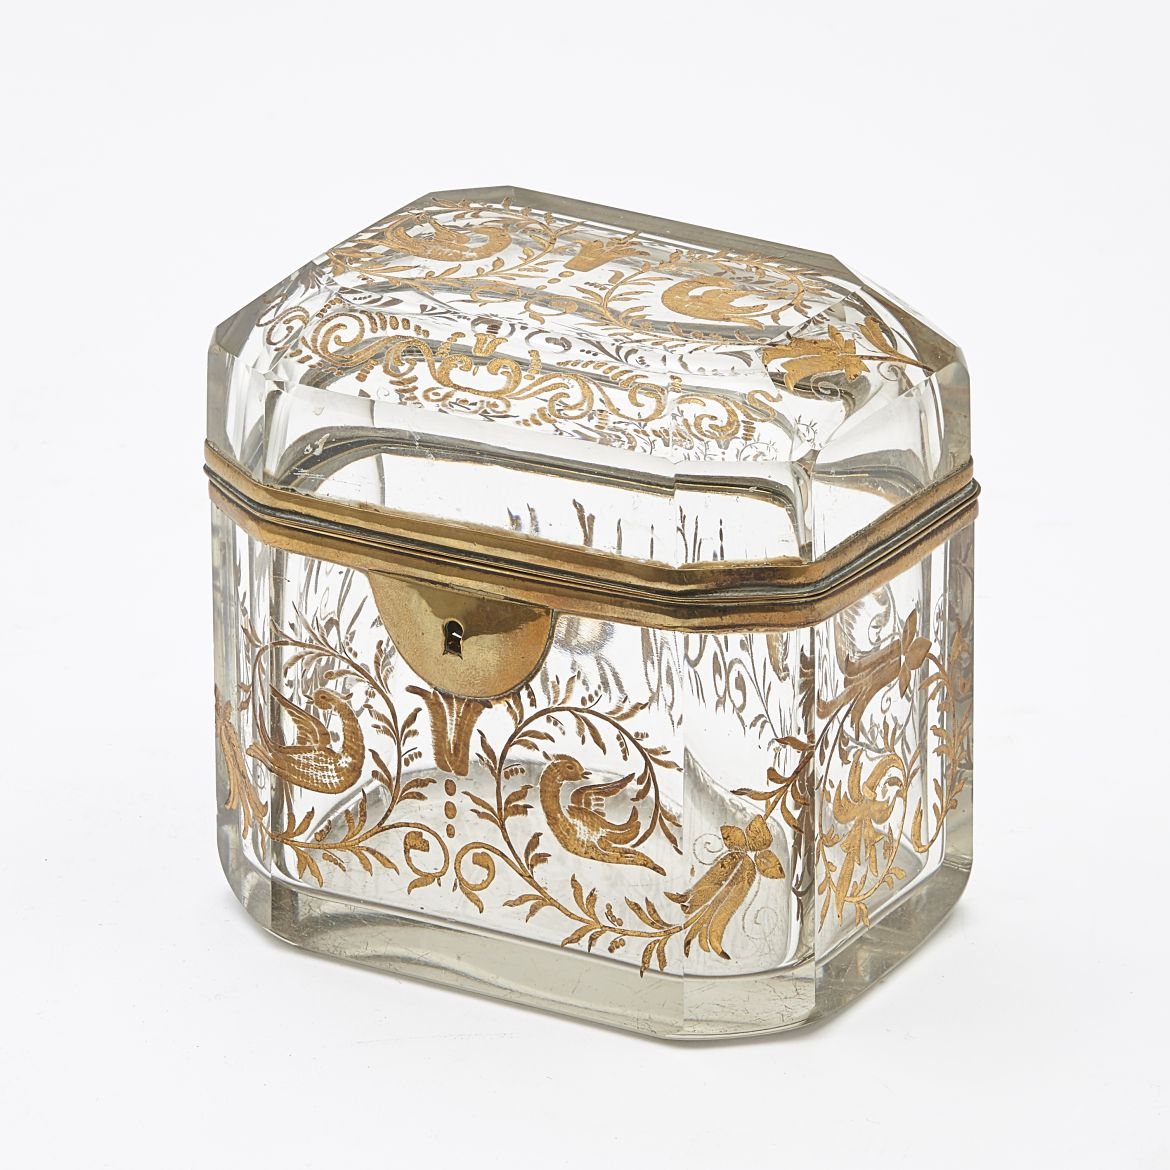 Moser engraved and Gilt Glass Box